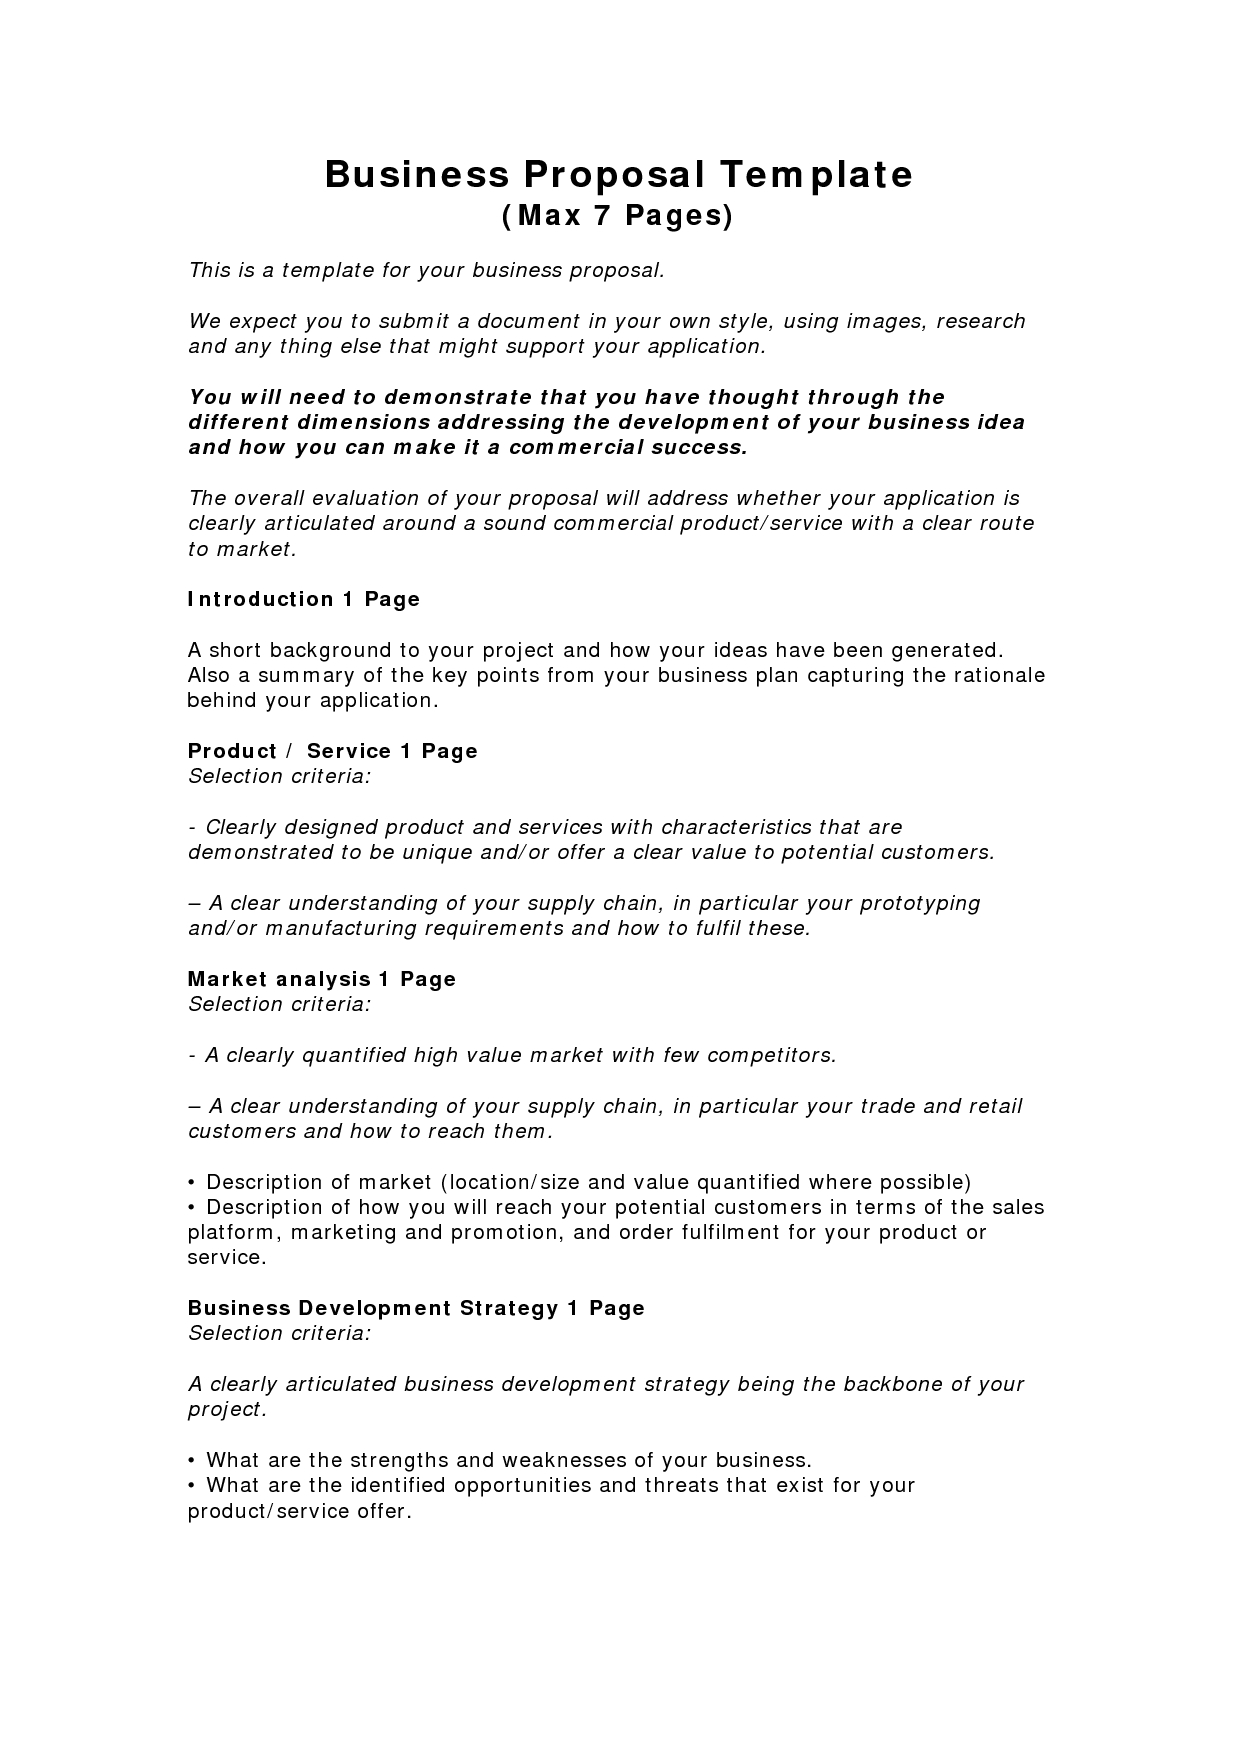 Business Proposal Letter Template Free Download - Business Proposal Templates Examples